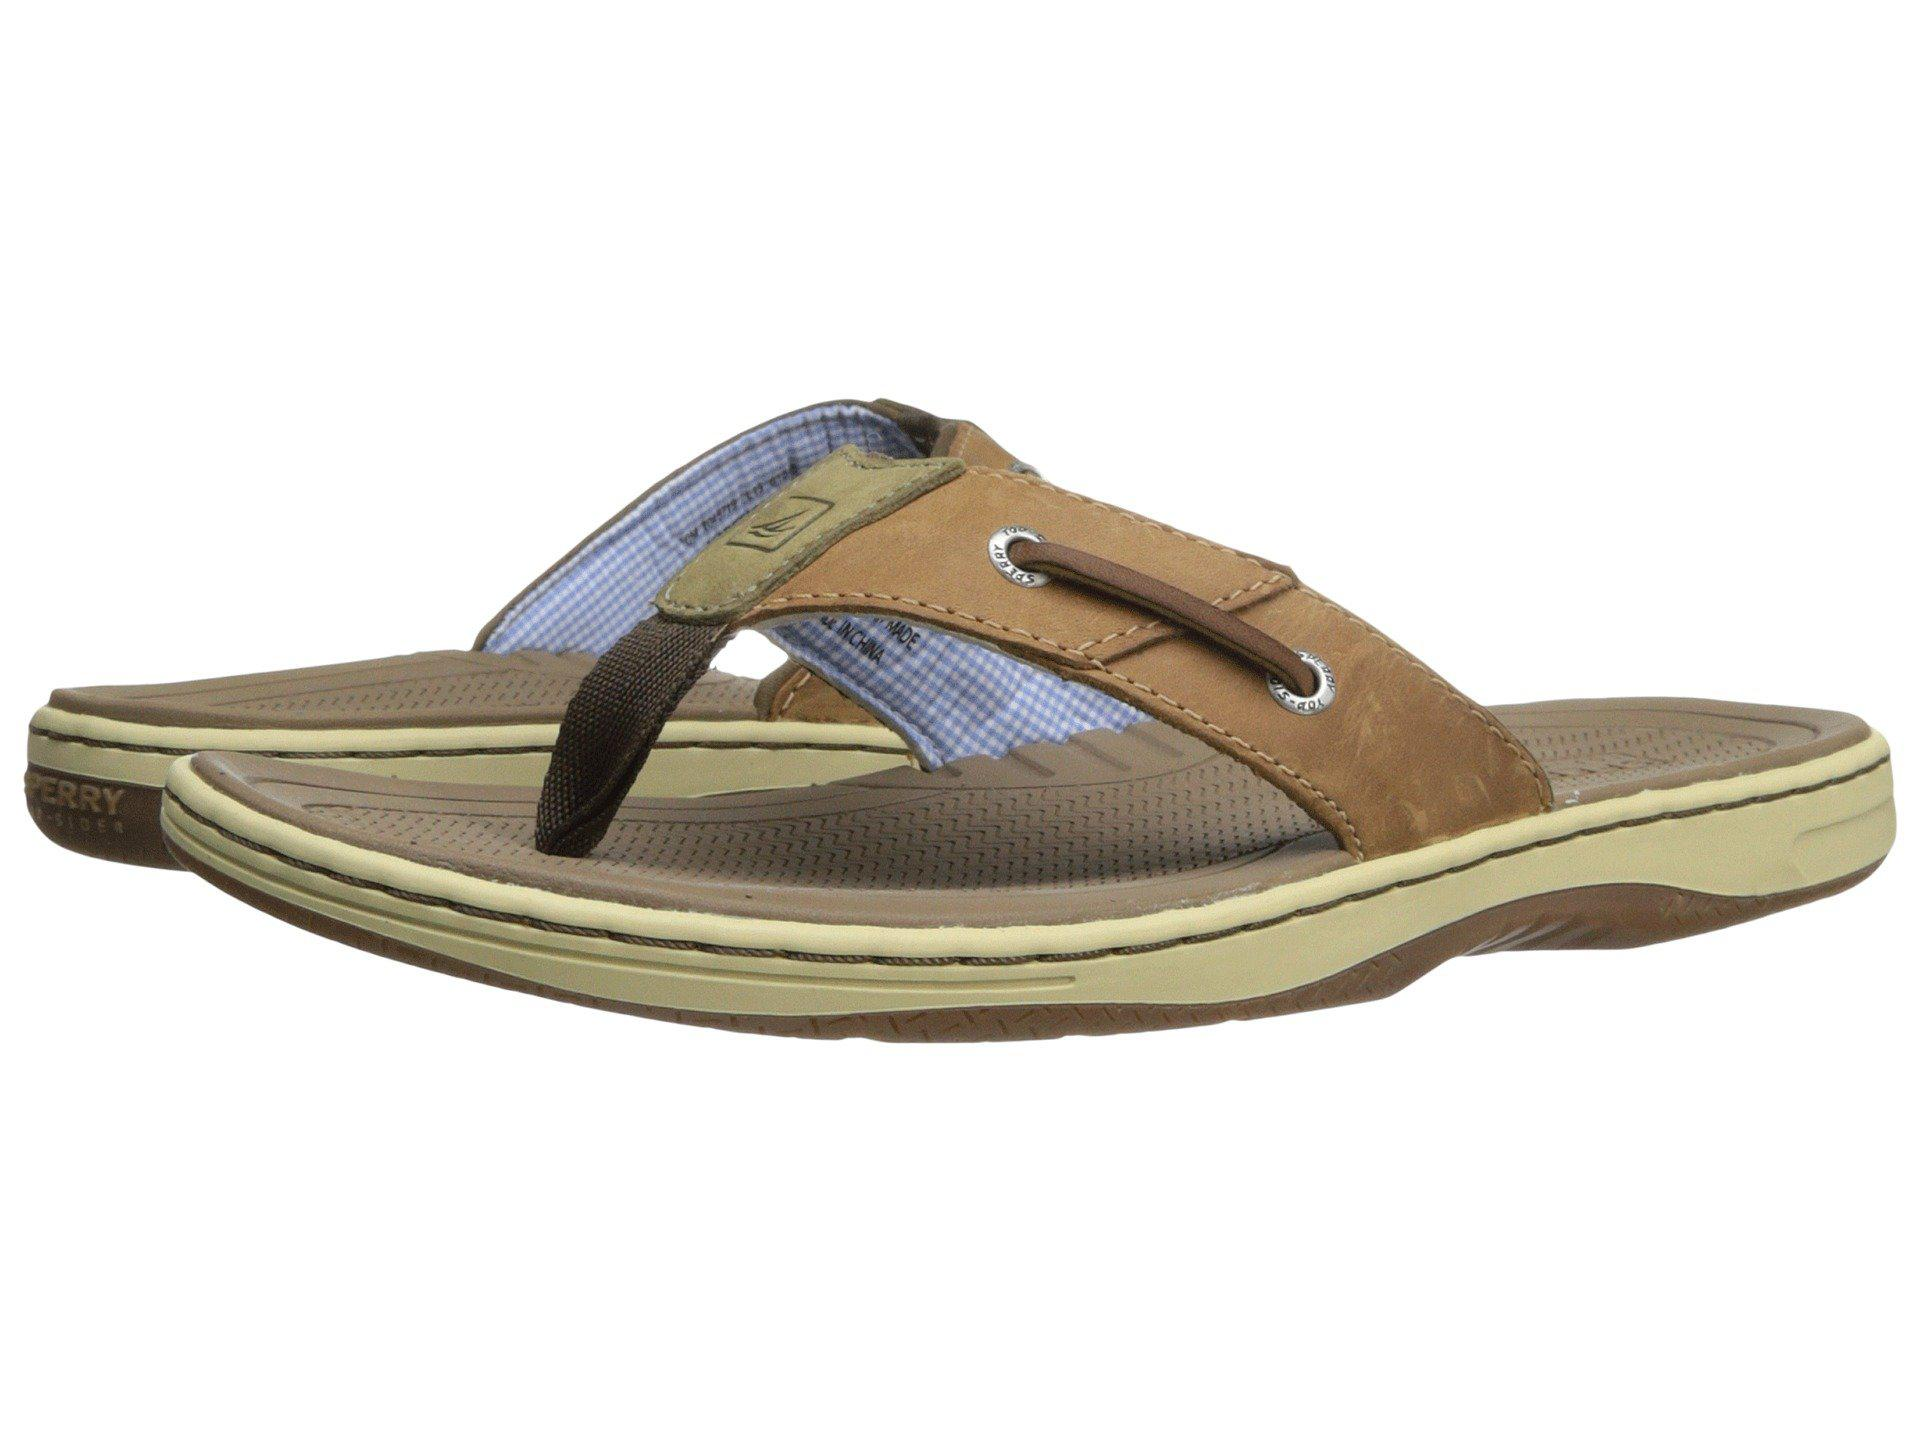 fd2aacbafaa Lyst - Sperry Top-Sider Baitfish Thong (brown) Men s Sandals in ...